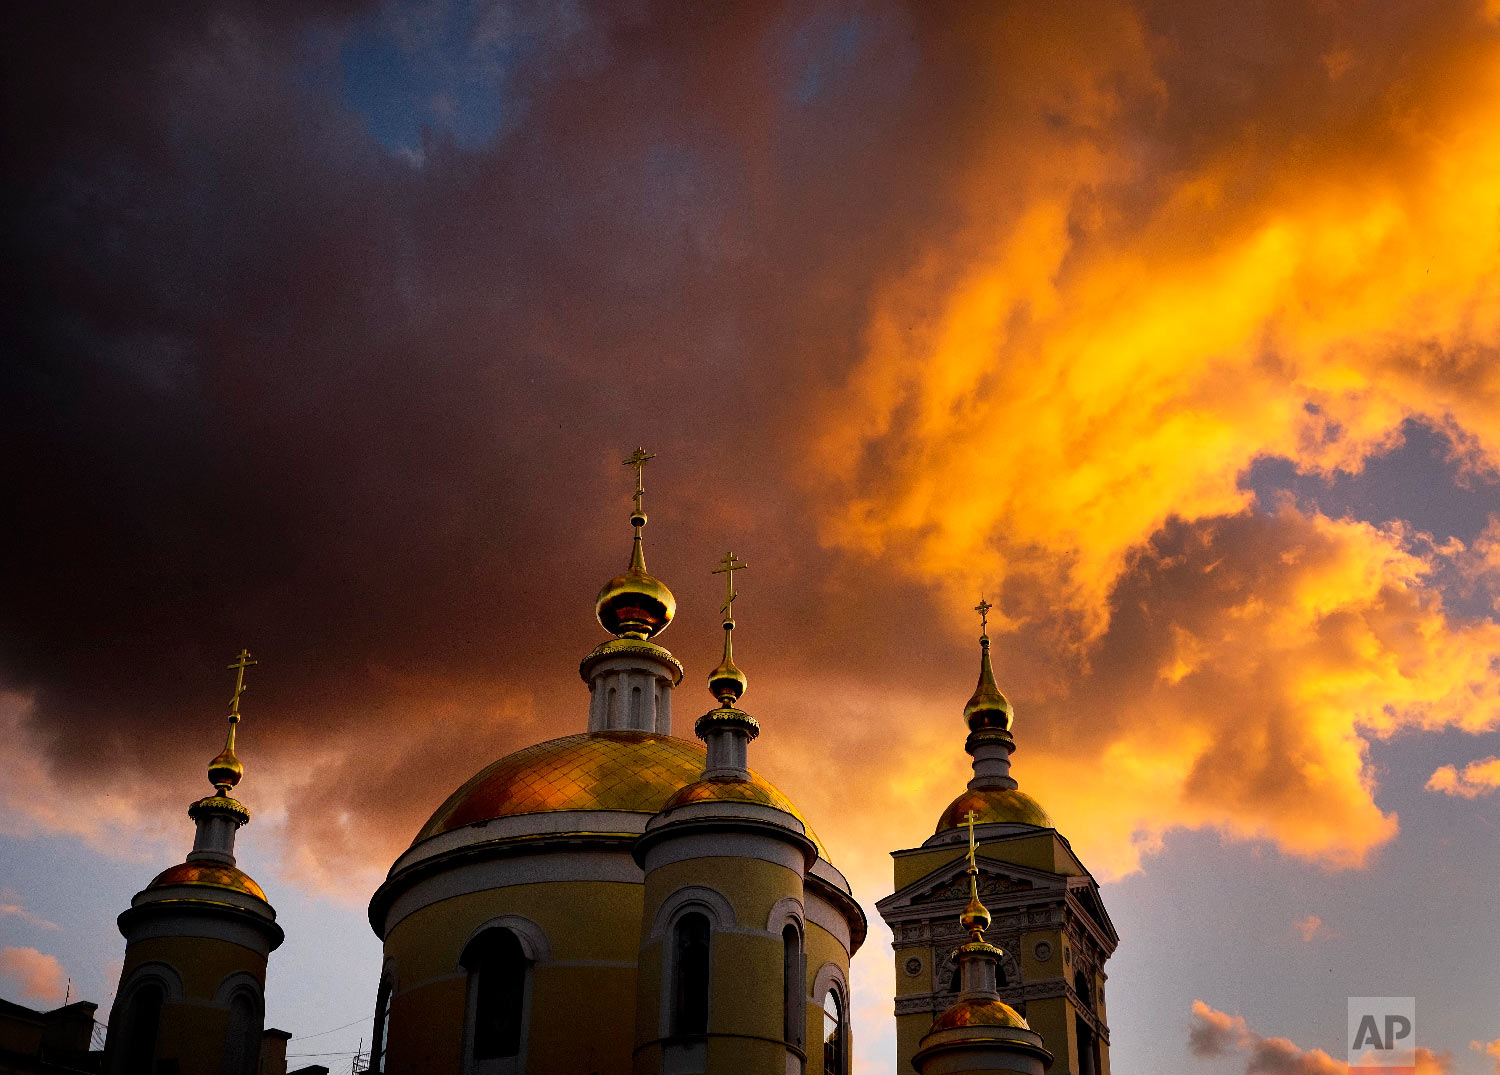 Clouds are illuminated by the sun setting sun over a church during the 2018 soccer World Cup in Podolsk near Moscow, Russia on June 19, 2018. (AP Photo/Michael Probst)